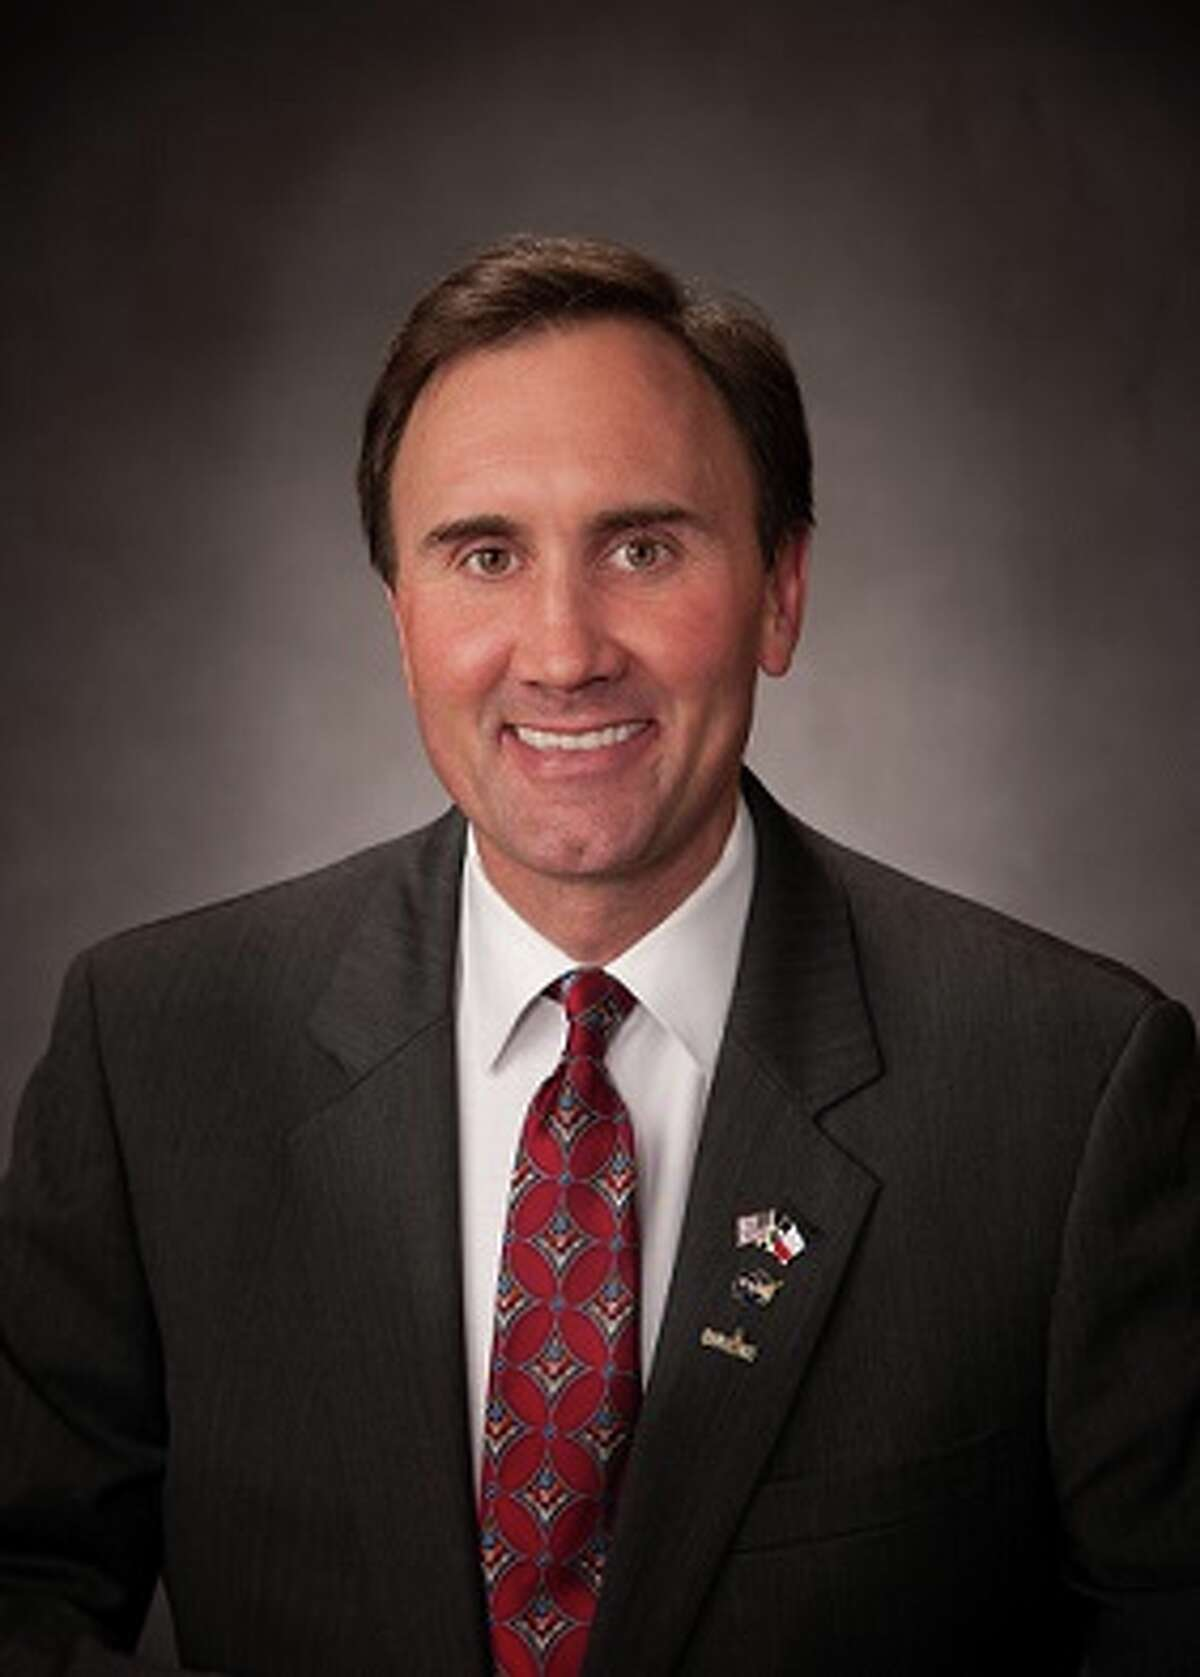 U.S. Rep. Pete Olson is seeking re-election as U.S. representative to Texas' 22nd Congressional District. (Website photo)